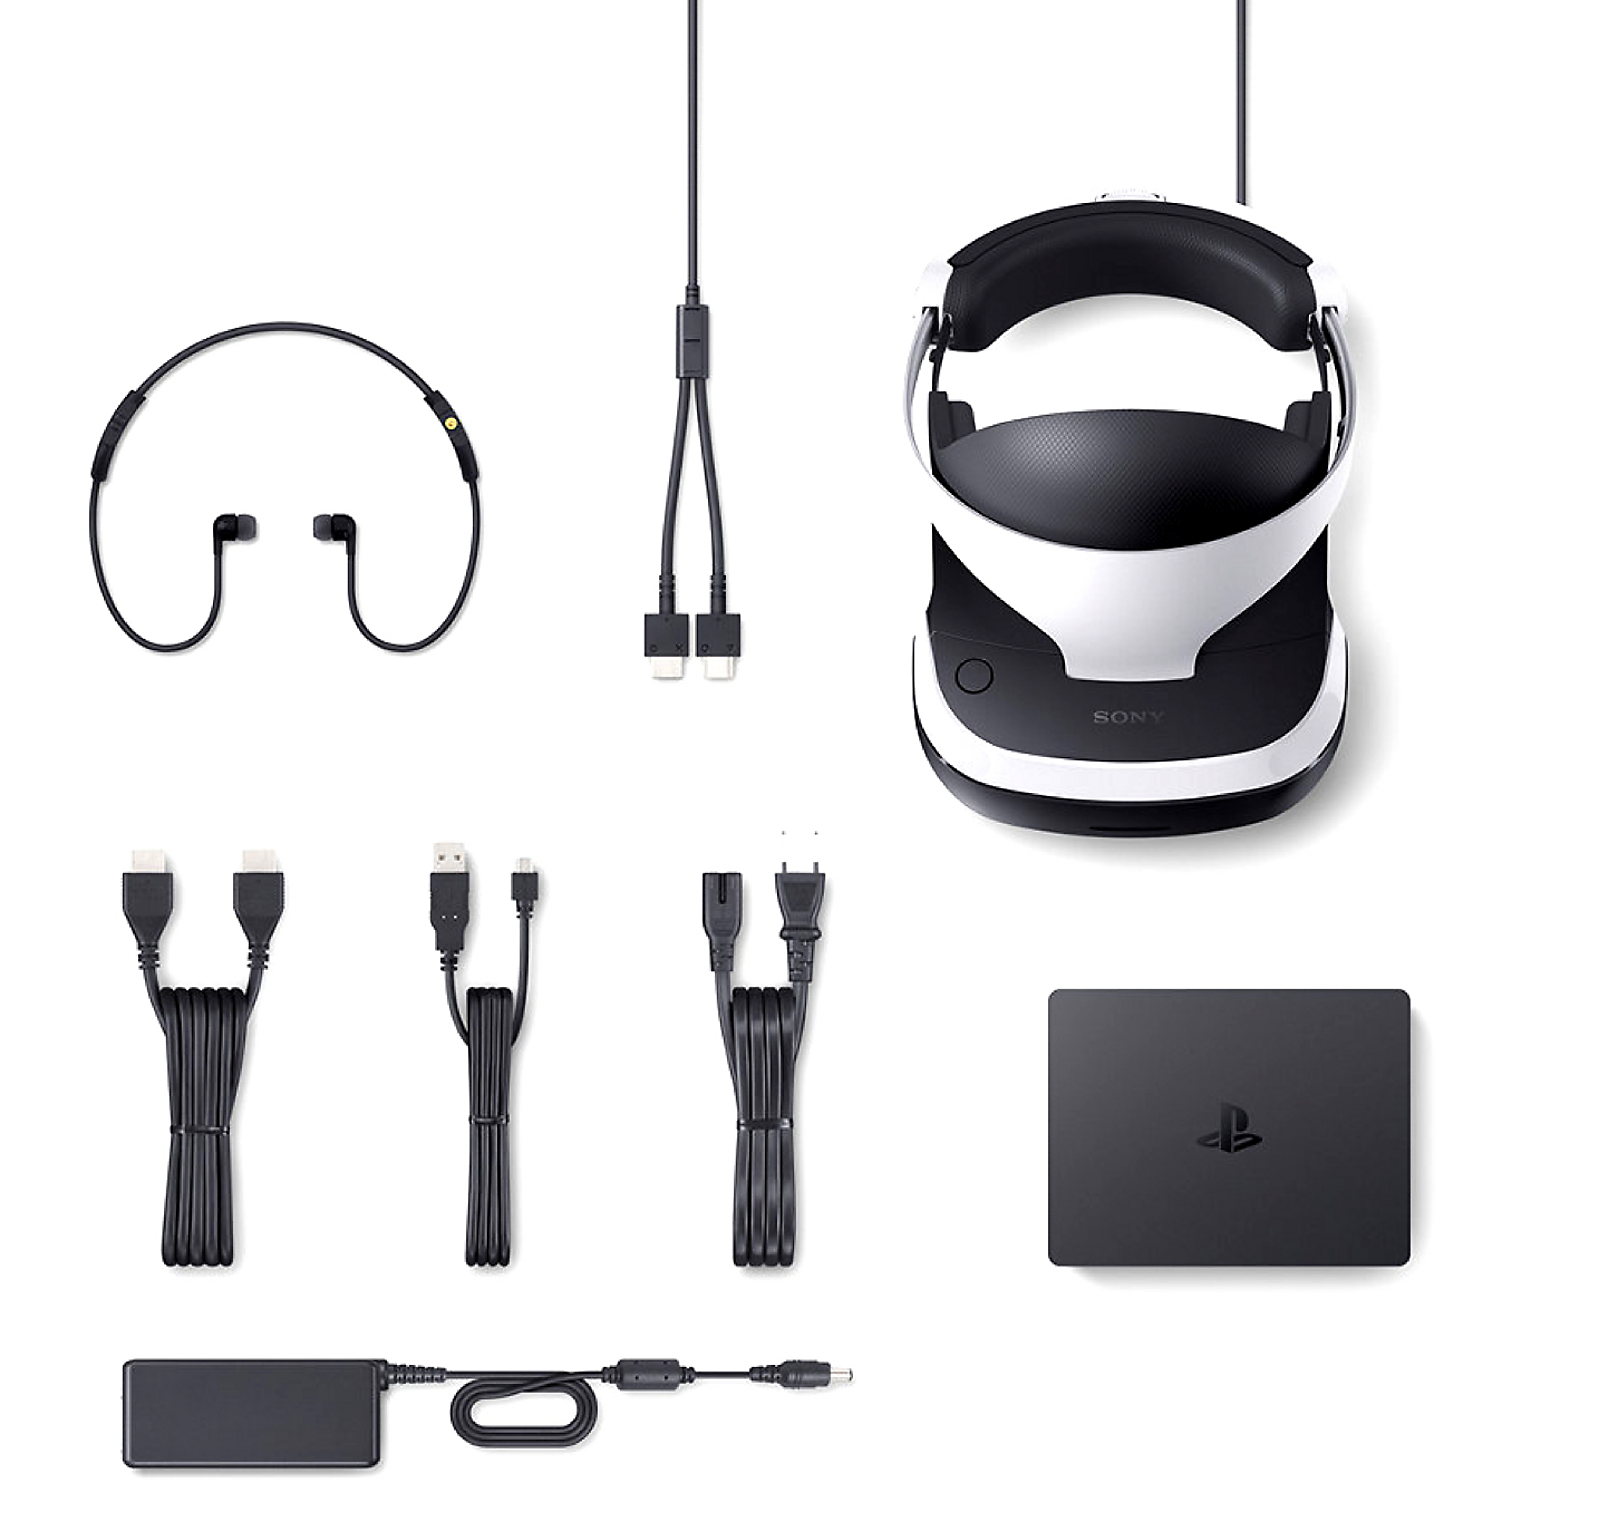 /attachments/010143127008076046201126204250059227015139060178/playstation-vr-contents-01-us-26feb19.png